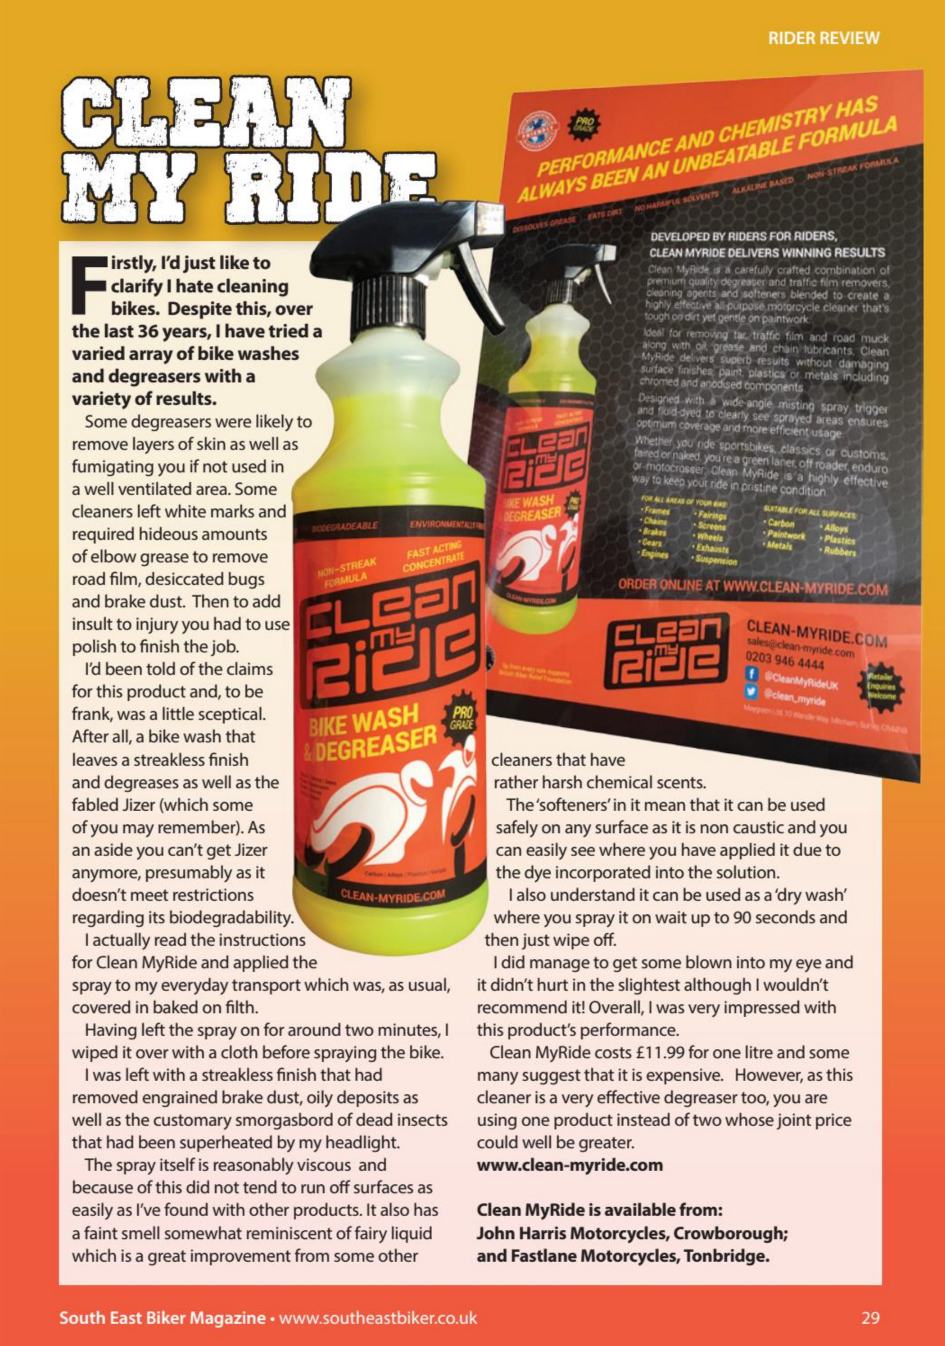 clean-myride-wash-degreaser-south-east-biker-magazine-review-december2017